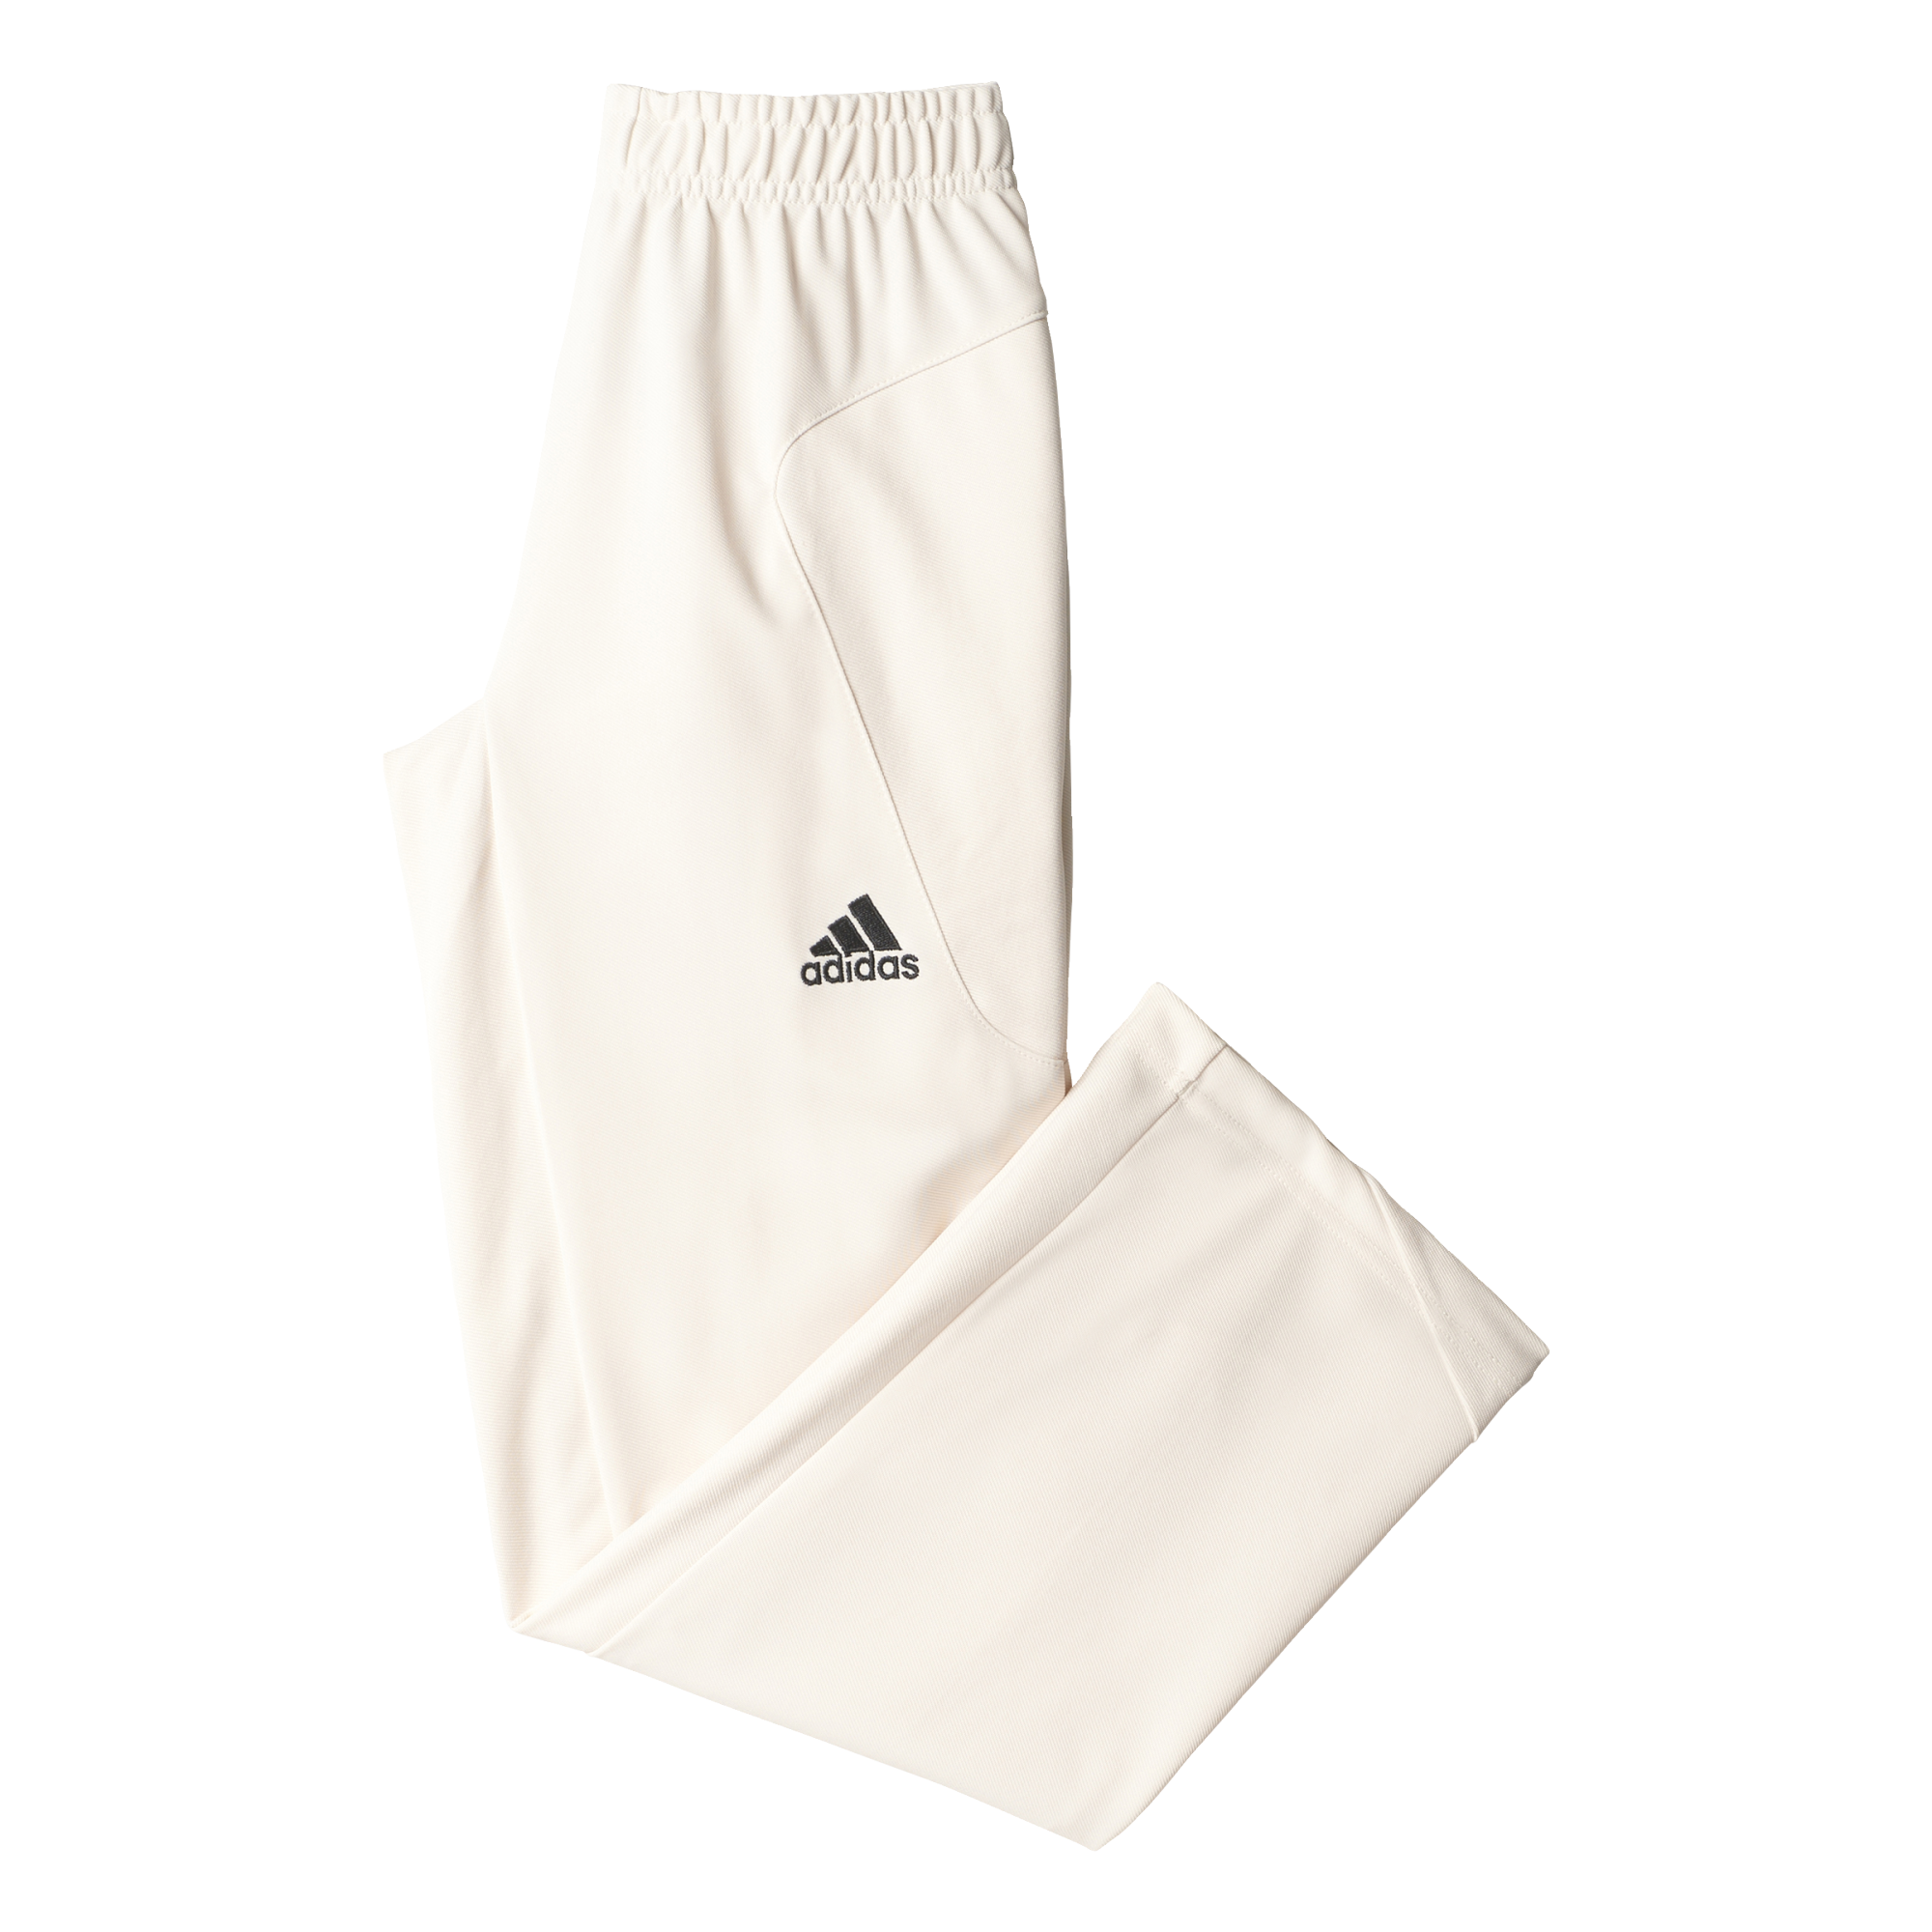 Chappel & Wakes Colne CC Adidas Pro Junior Playing Trousers